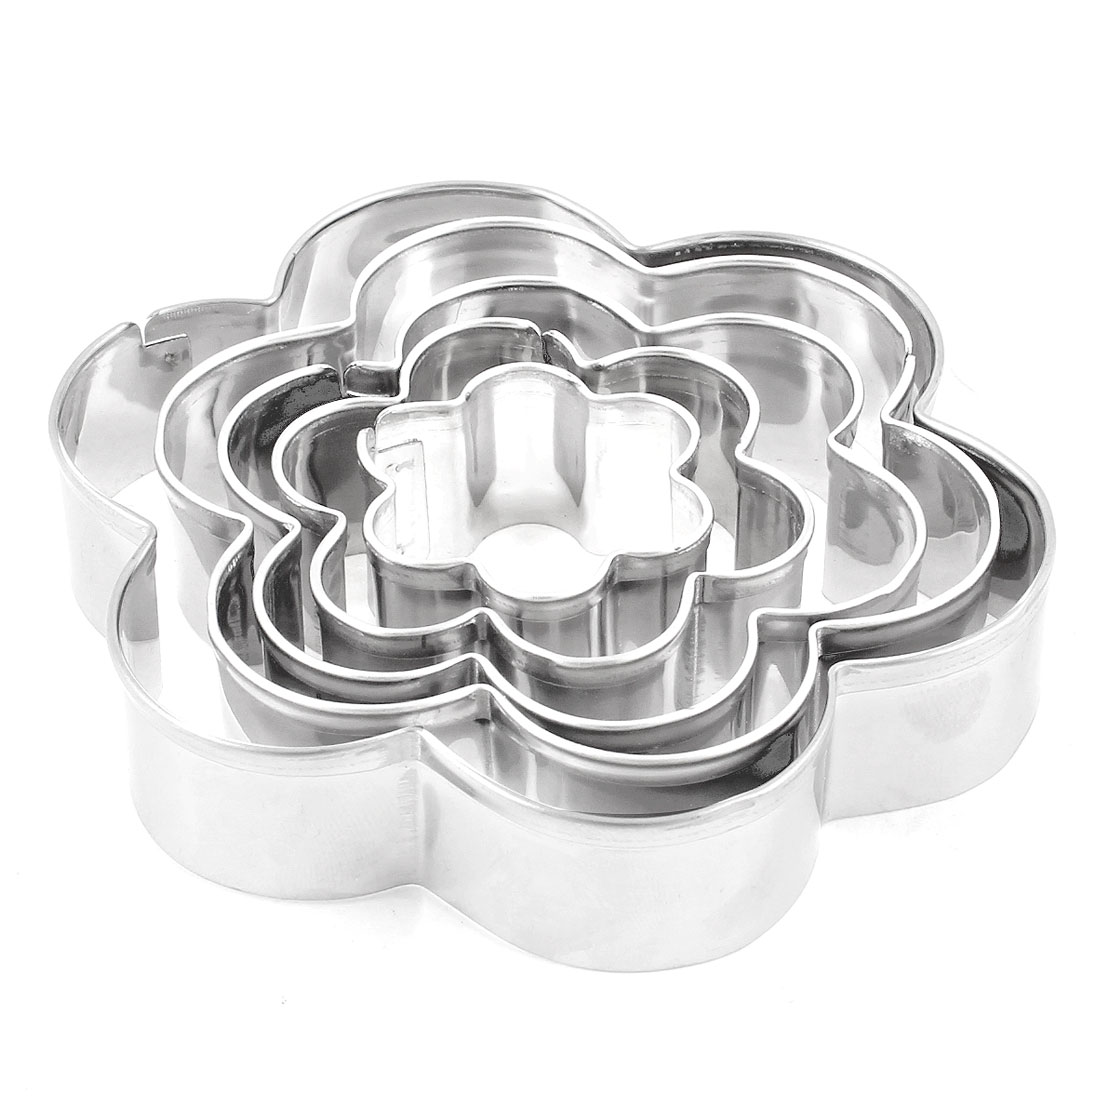 5 Pieces Silver Tone Flower Shape Pastry Biscuit Cutter for Party